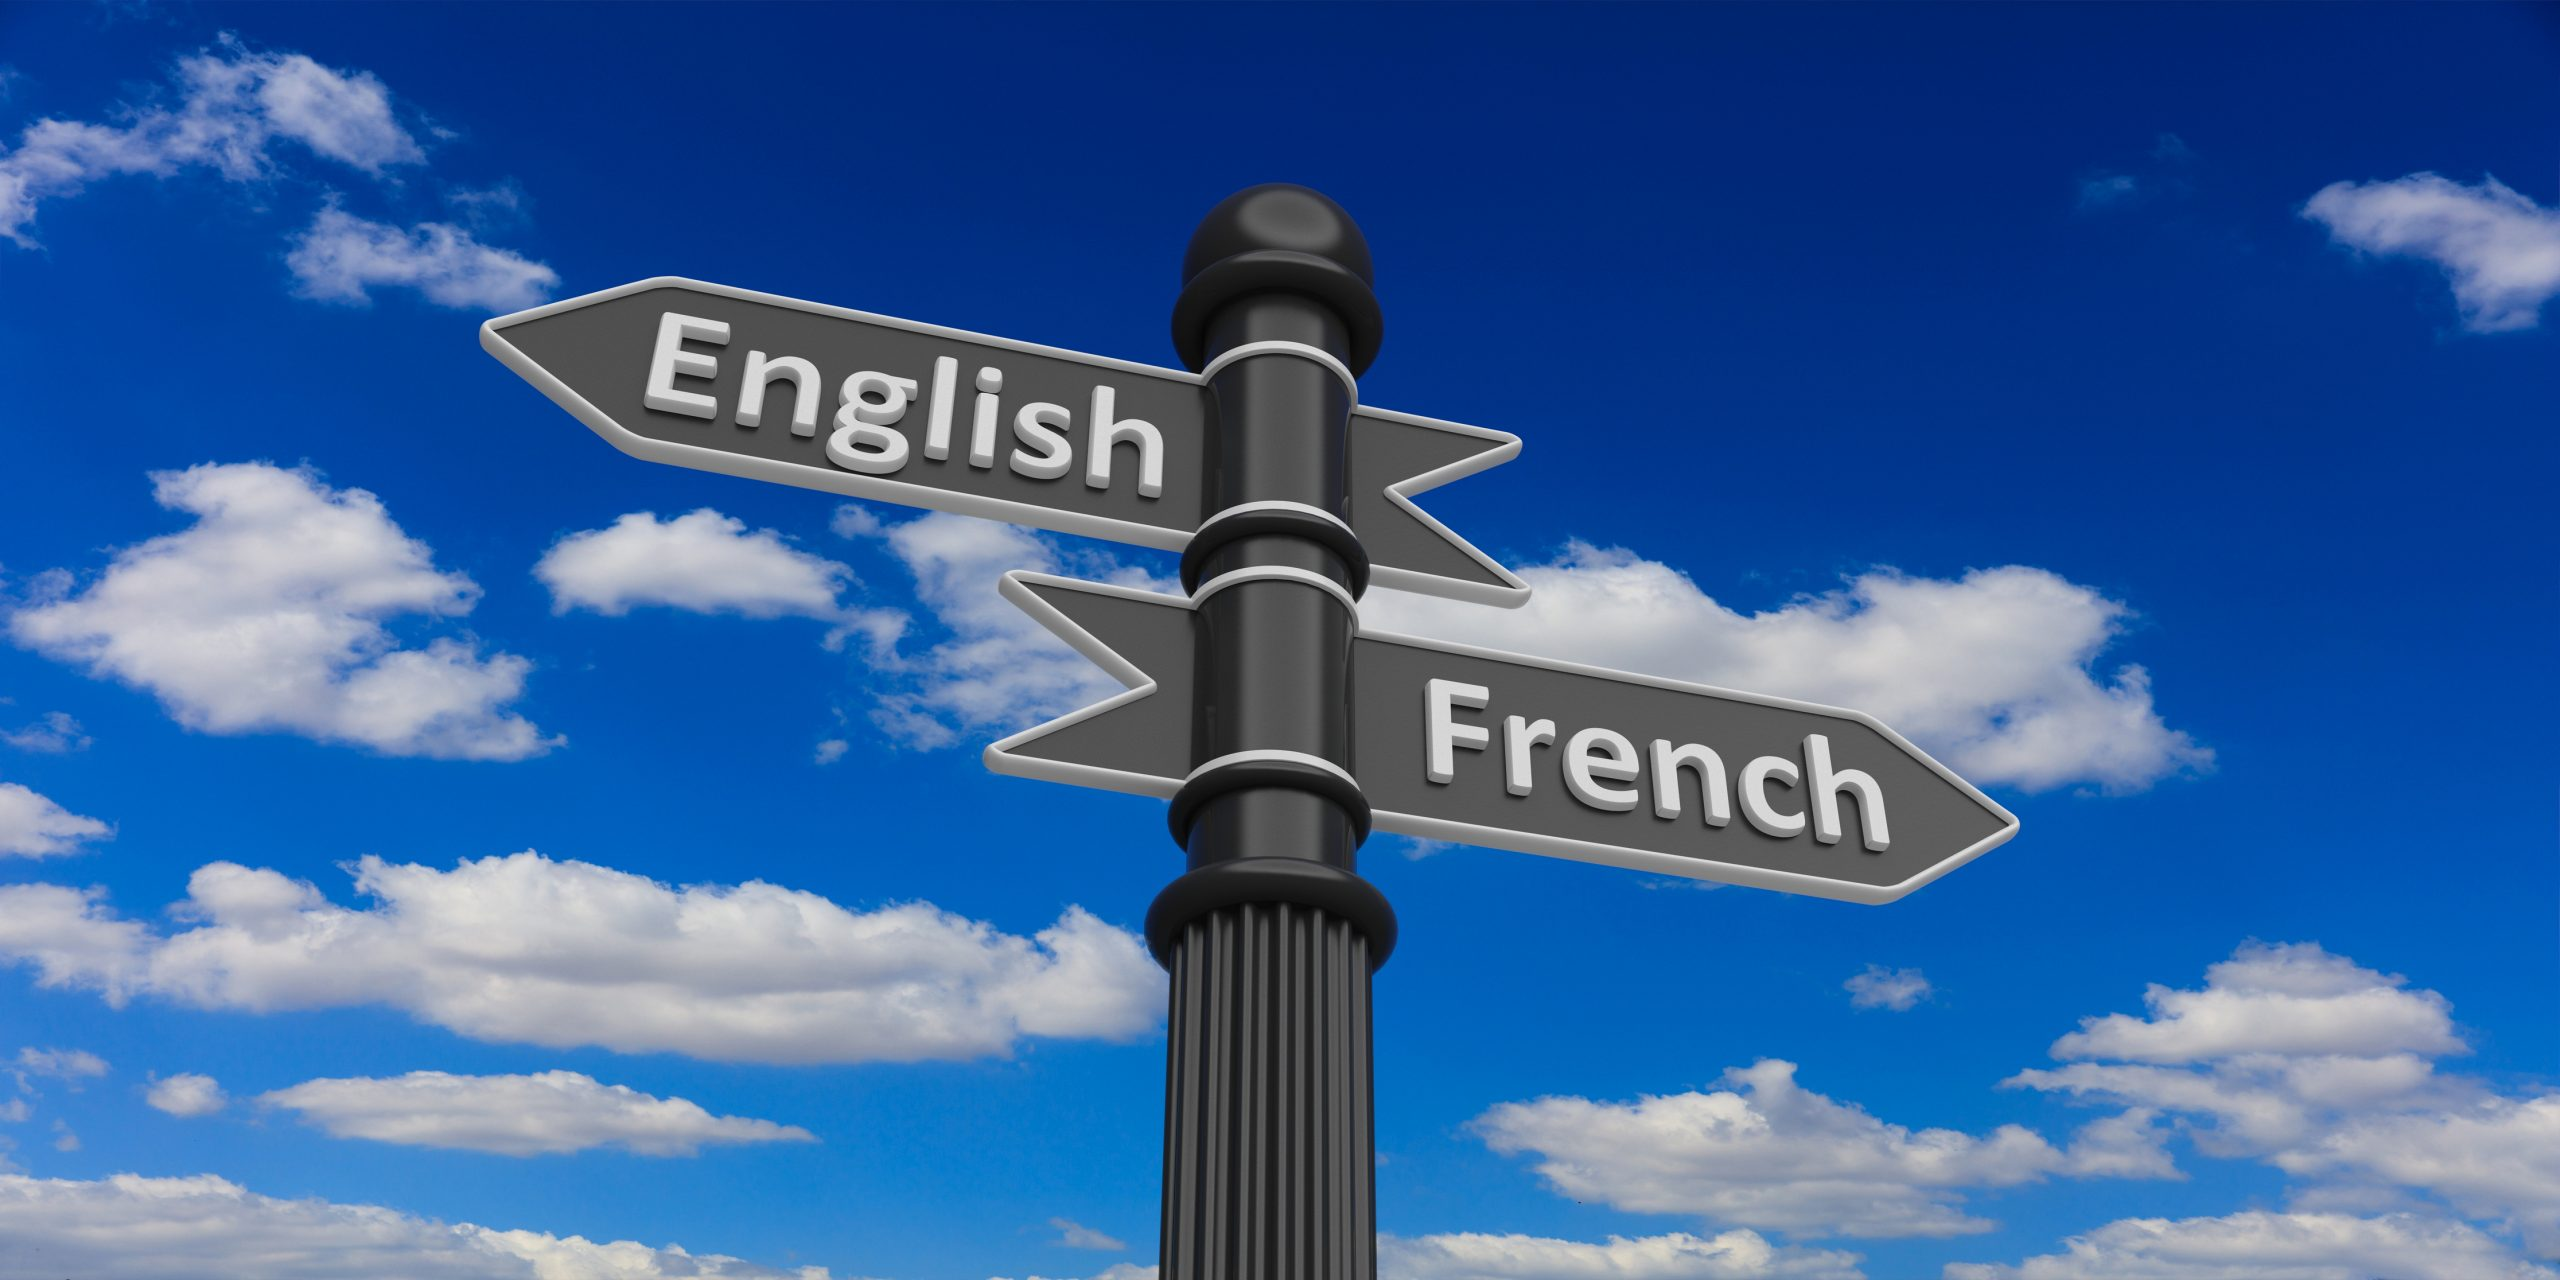 There is a 3d rendering languages choice among English and French on road signs and it is a metaphor for the language barrier faced by the immigrant women which further limits their opportunities in Canada making them more vulnerable to abuse.